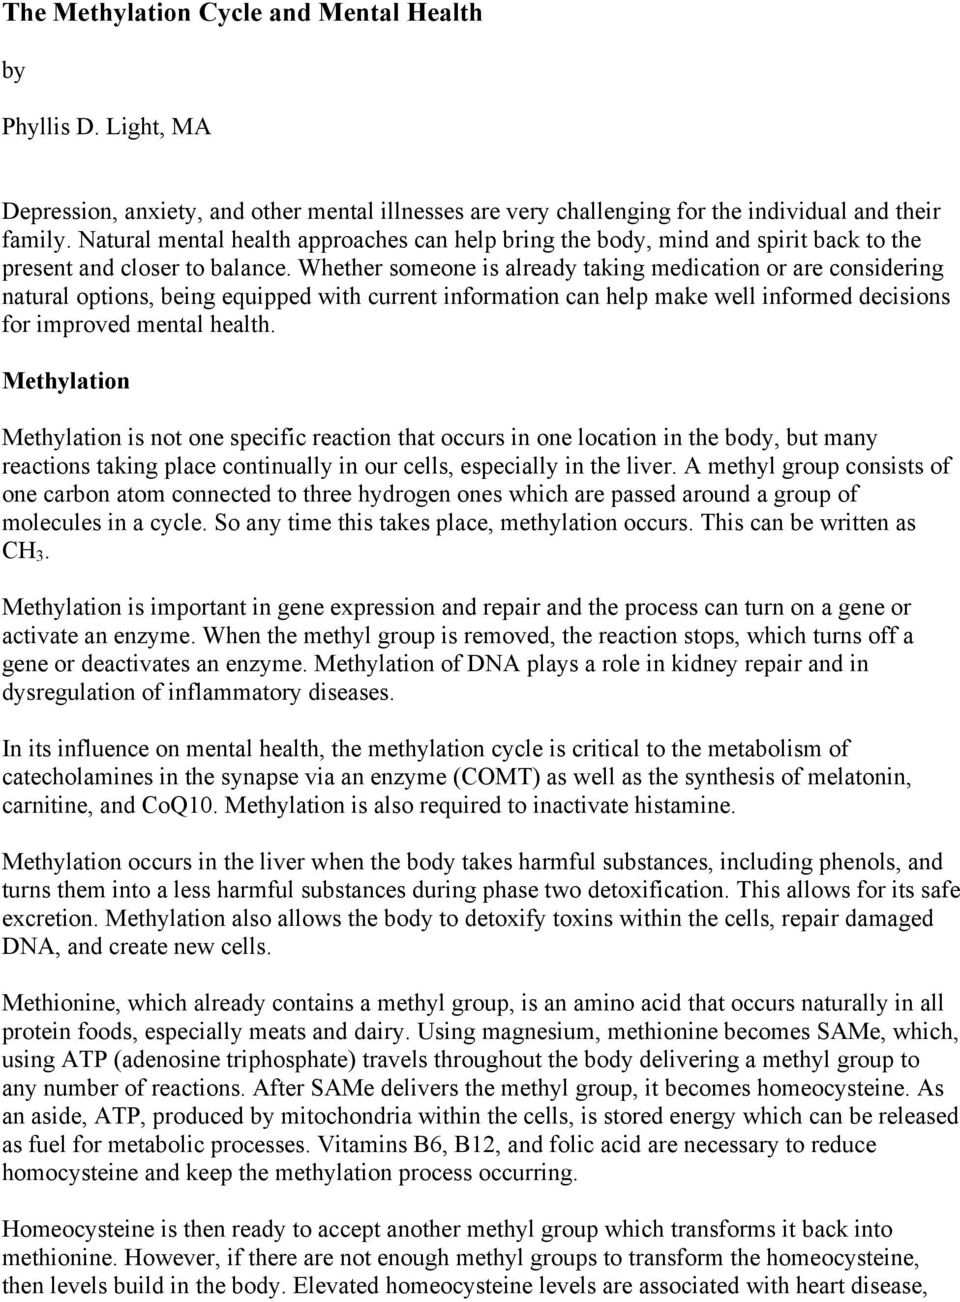 The Methylation Cycle and Mental Health - PDF